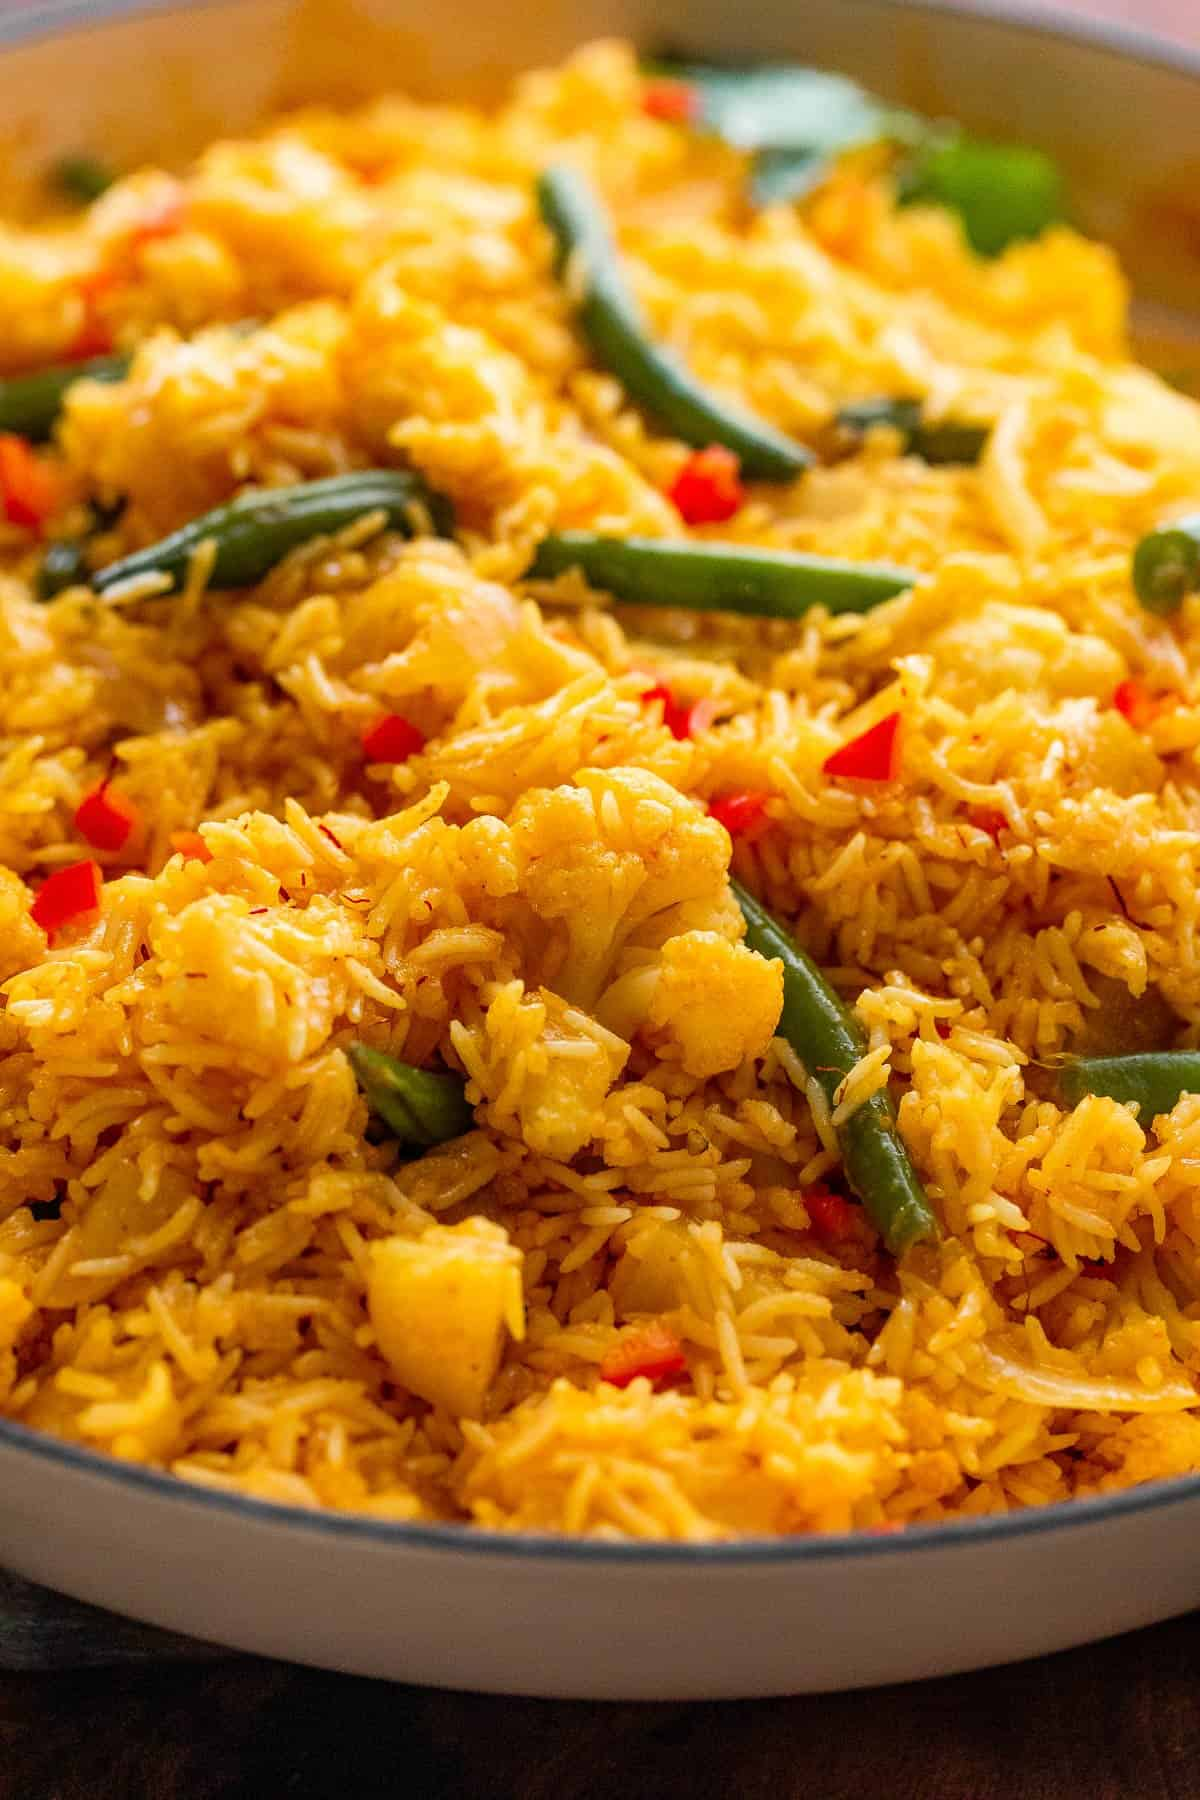 Vegetable Biryani Rice topped with green beans and red peppers